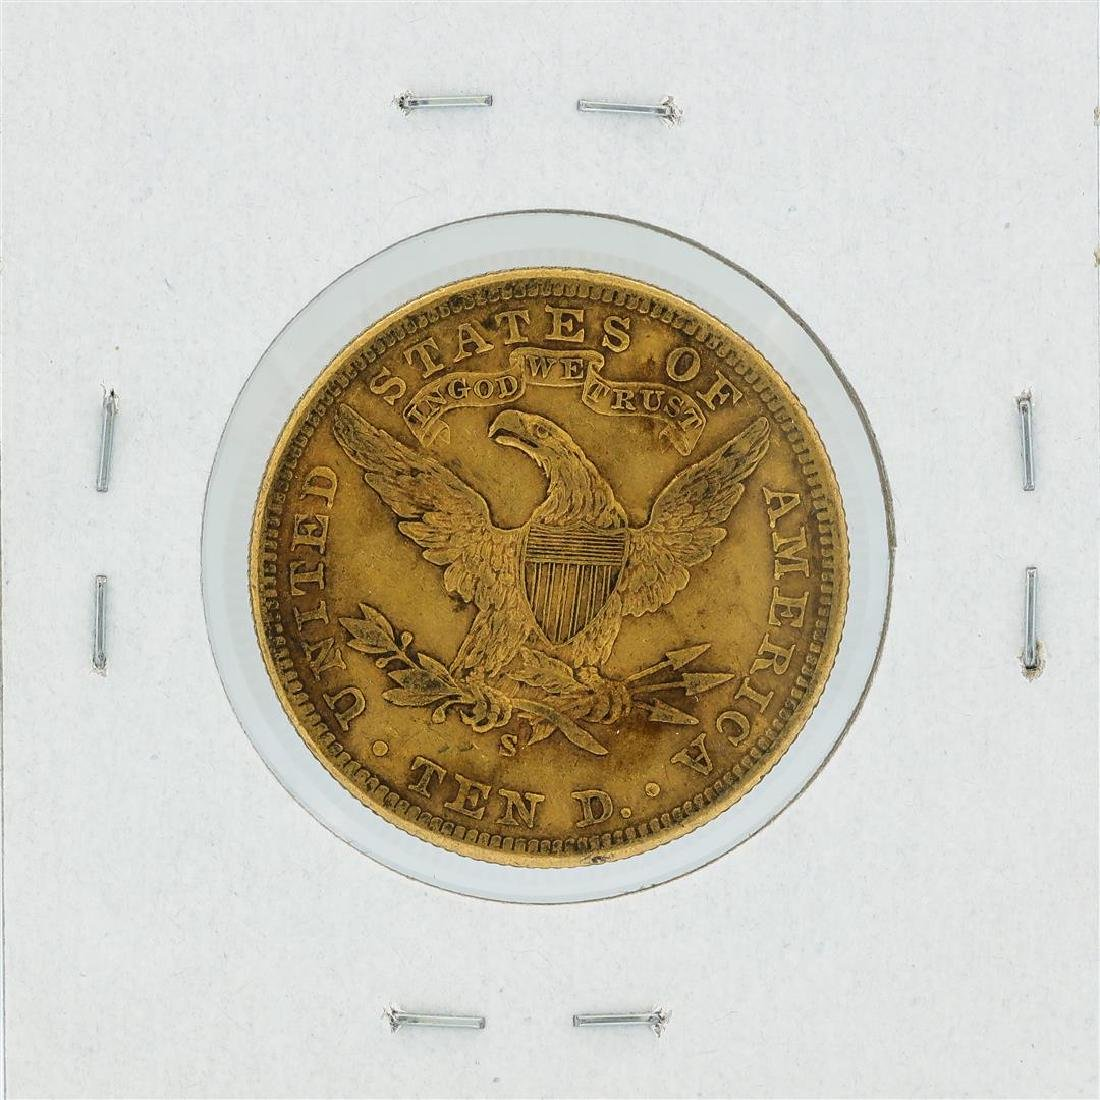 1903-S $10 XF Liberty Head Eagle Gold Coin - 2